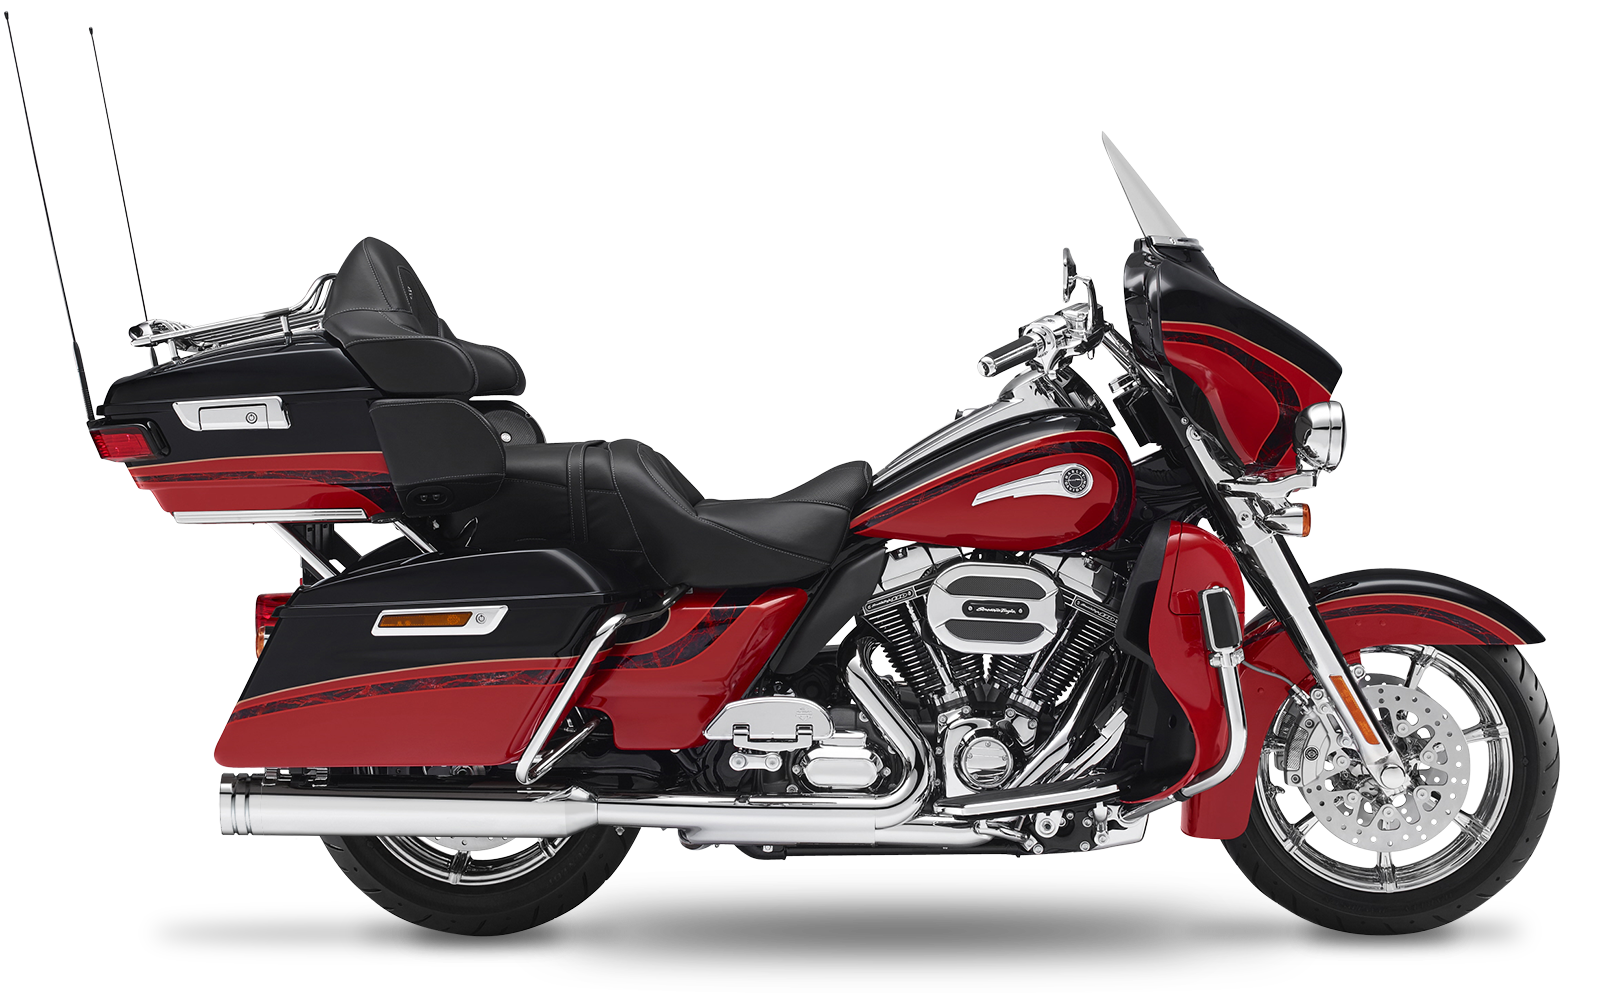 CVO - CVO Ultra Limited - TC110 - 2014-2016 - Endtöpfe